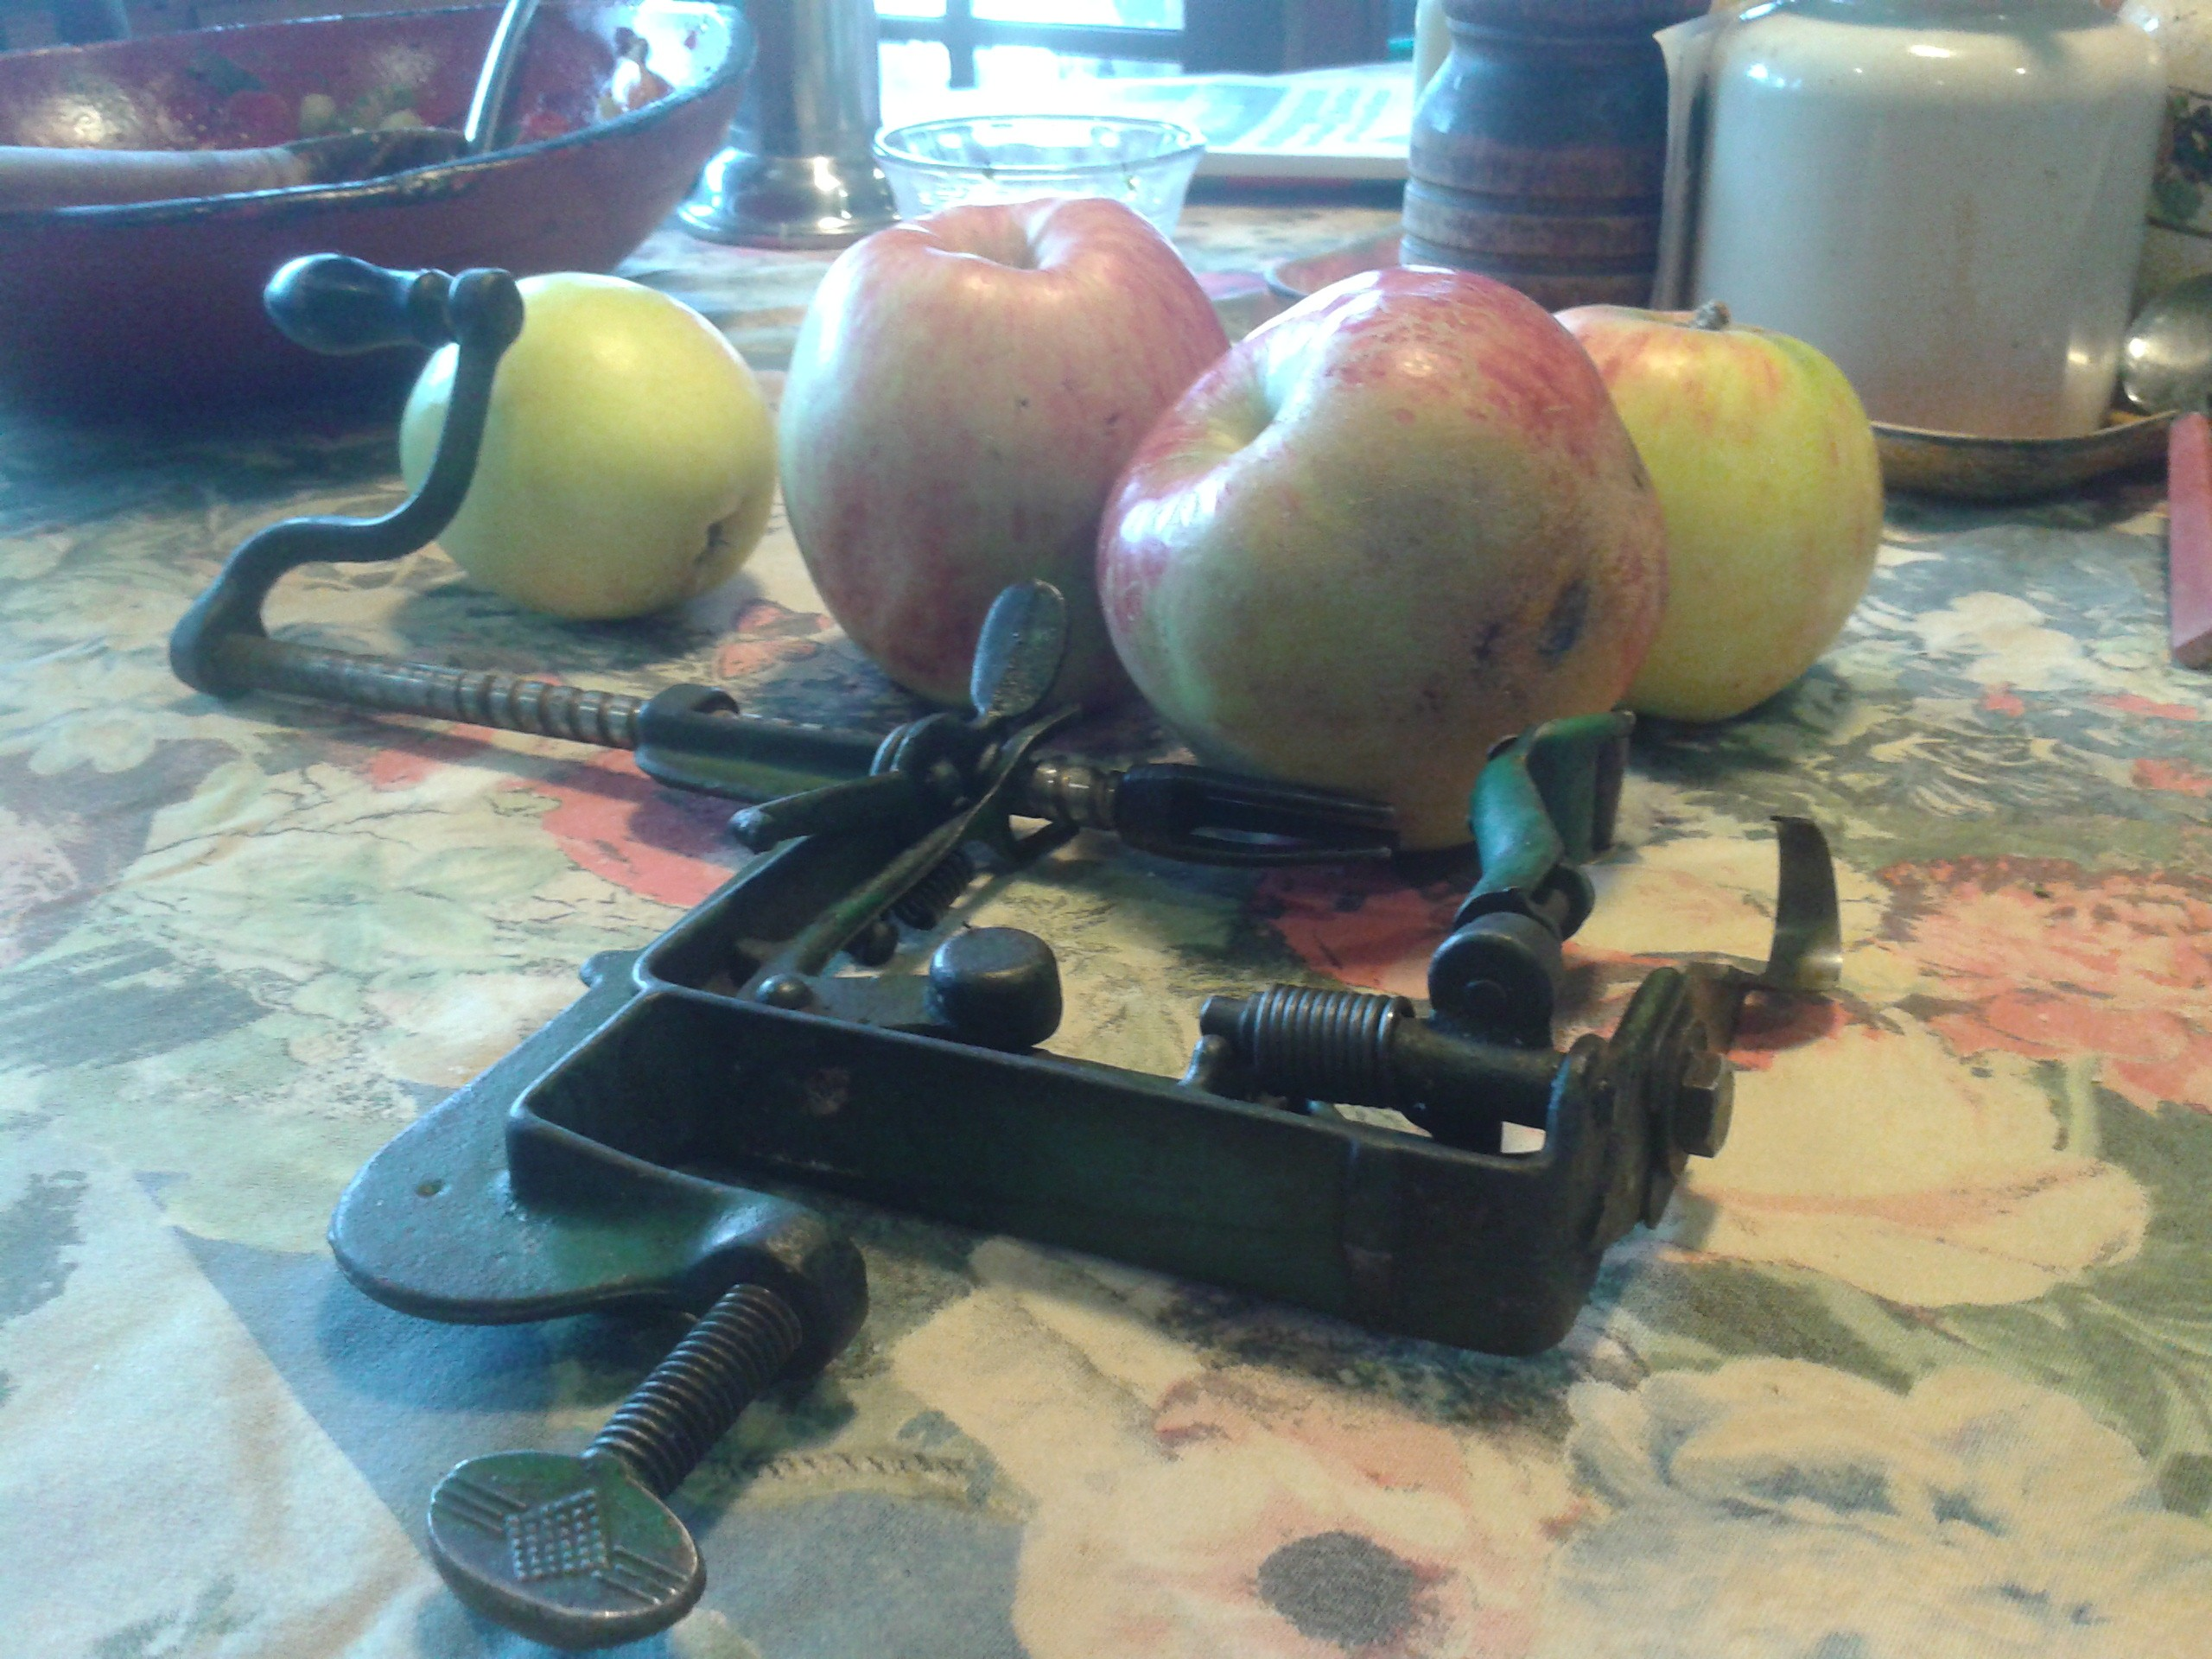 Apples and peeler - PHOTO BY JADA CALYPSO BROTMAN